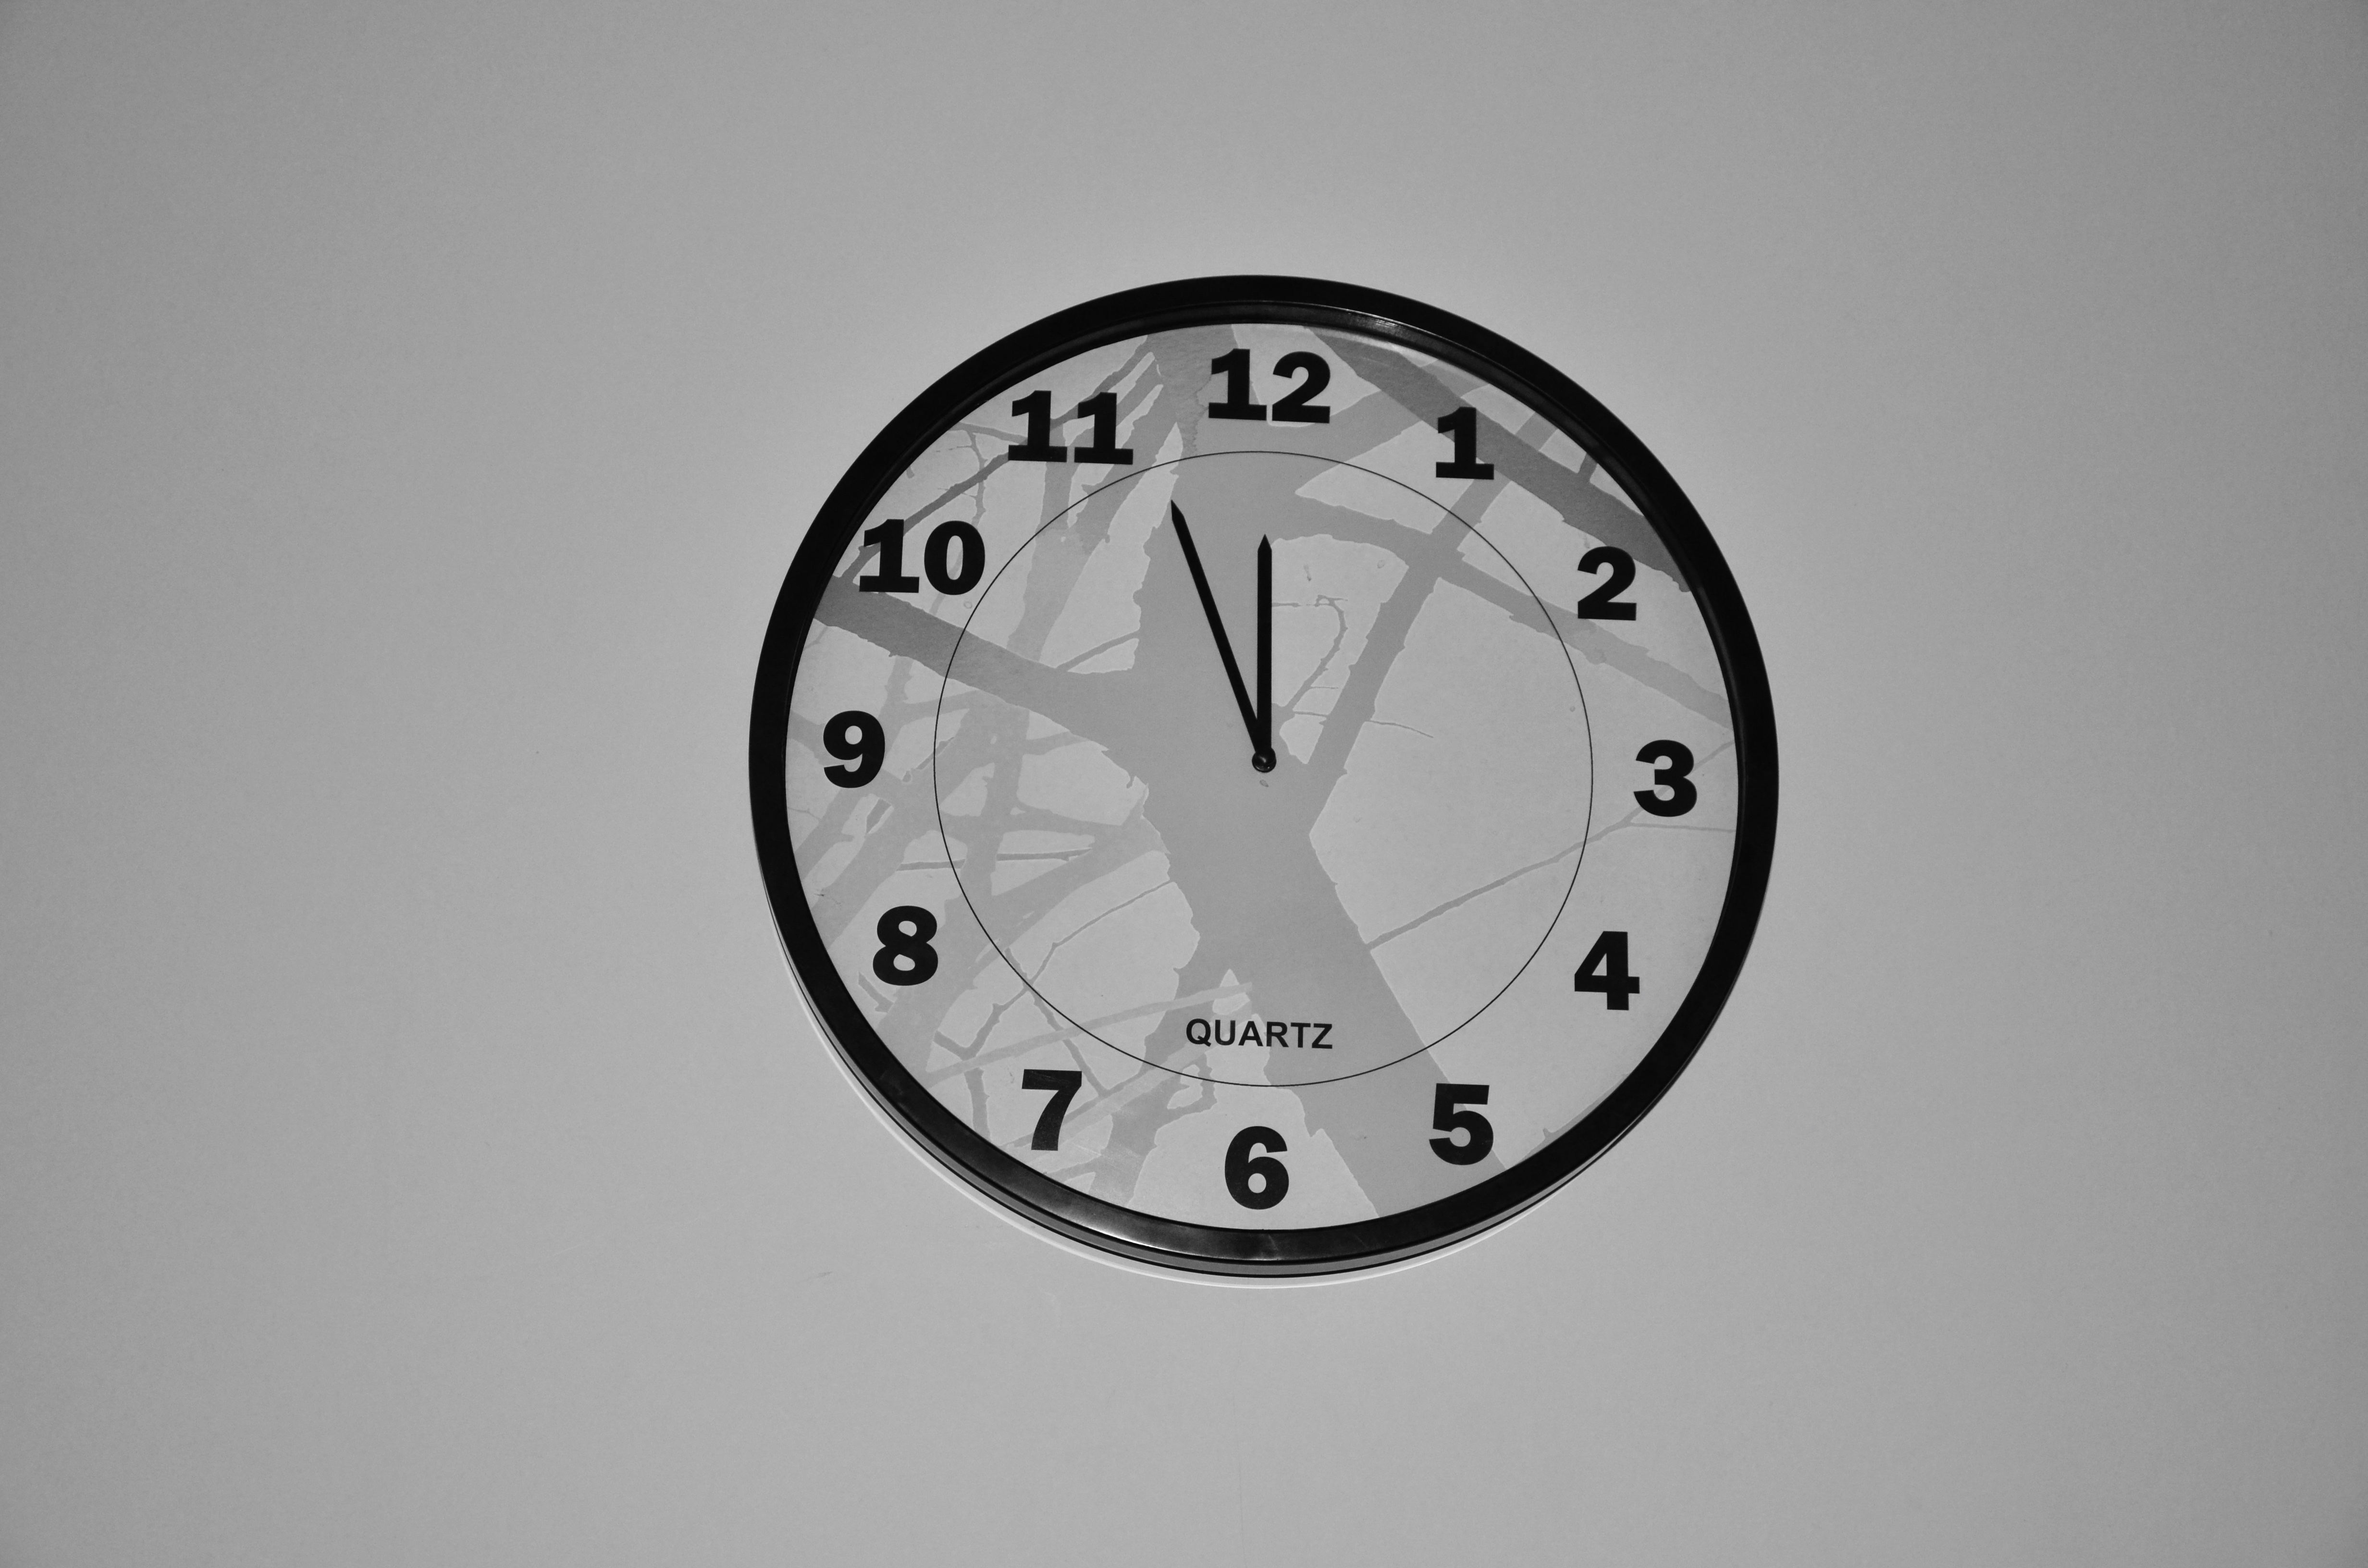 Free stock photos of wall clock pexels free stock photo of black and white time watch clock amipublicfo Gallery